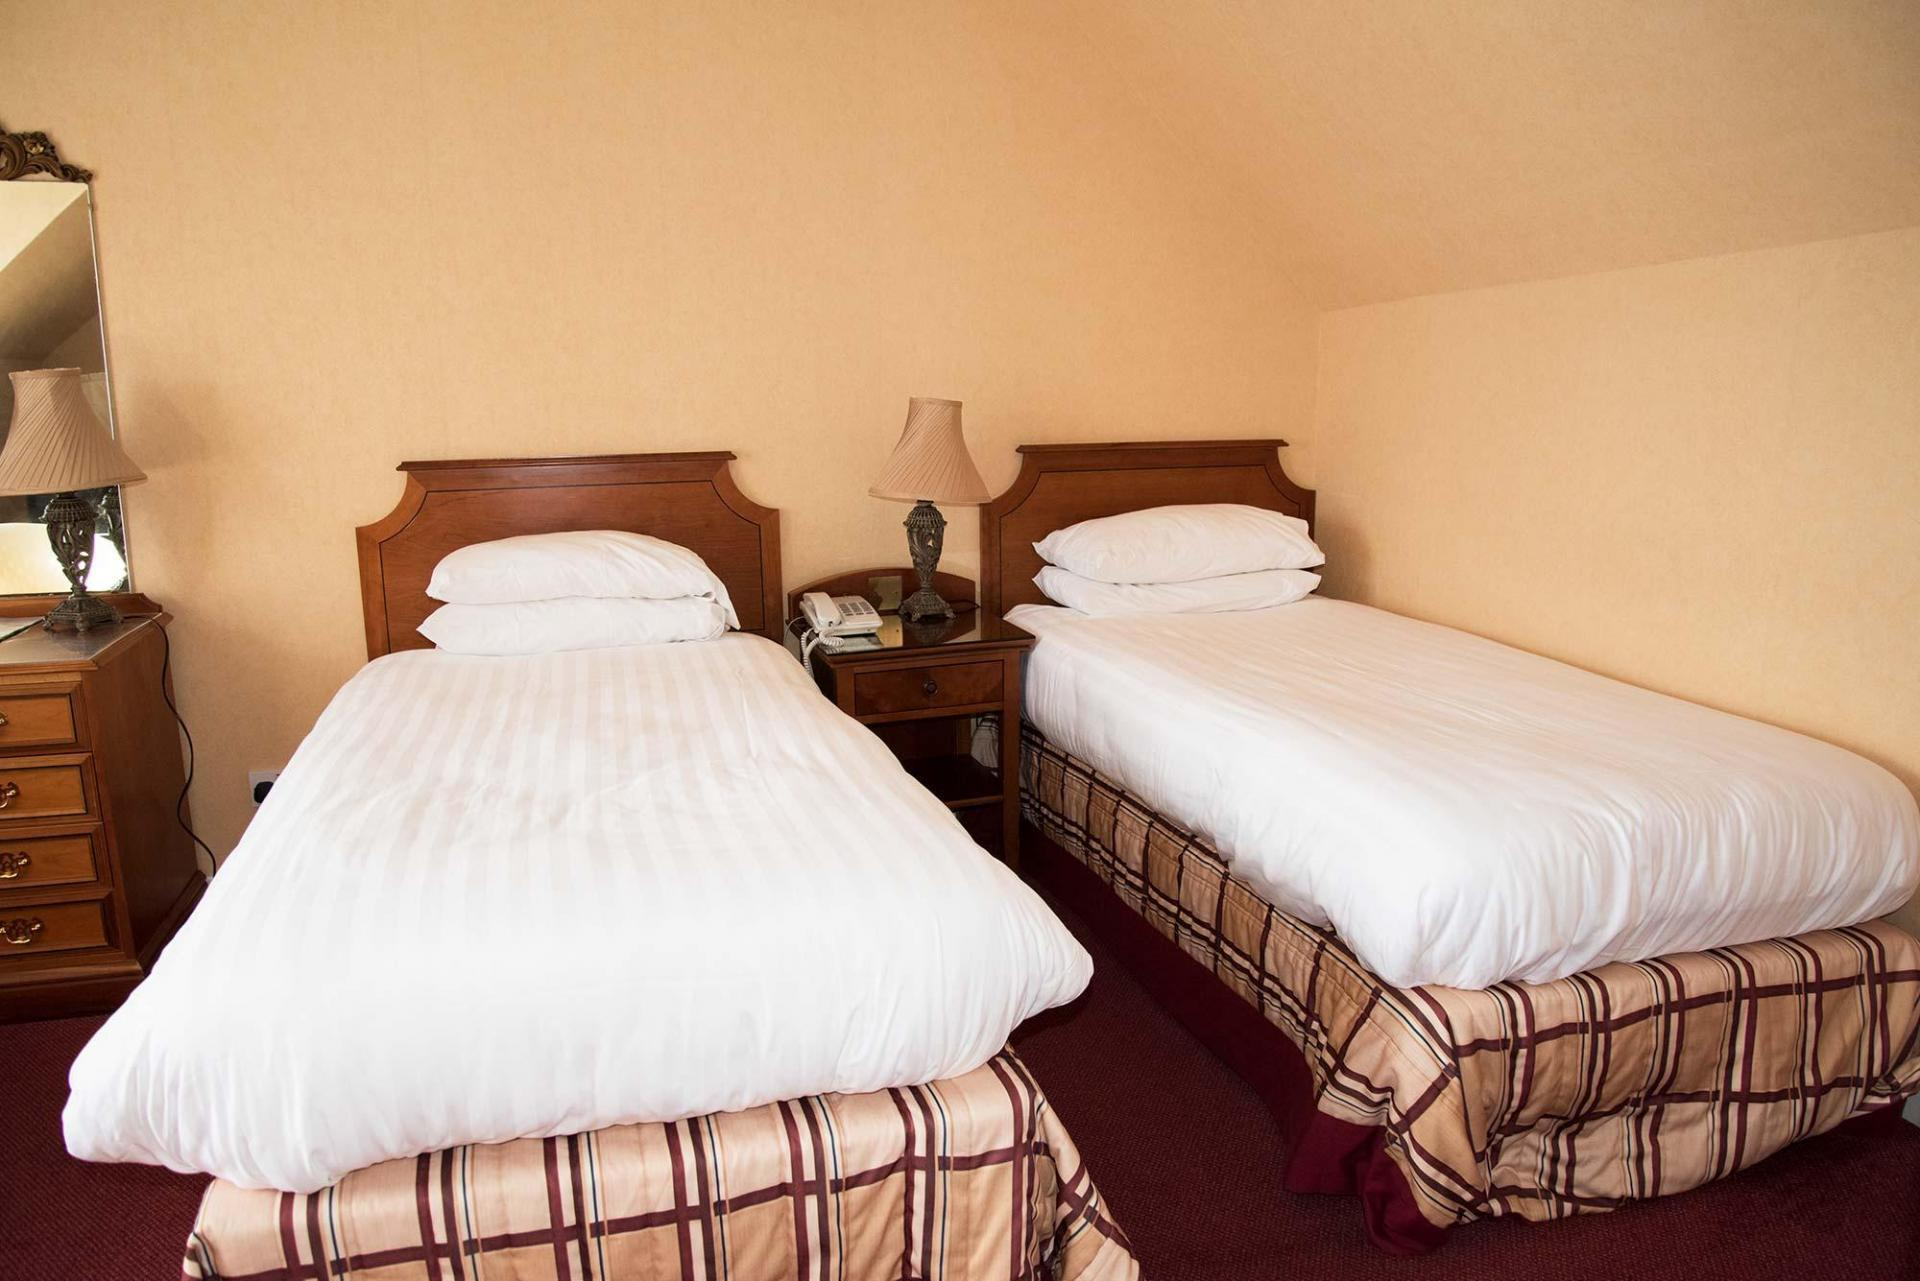 Twin En-suite Room Ground Floor in annexe building,50m from the main hotel. Restricted view.